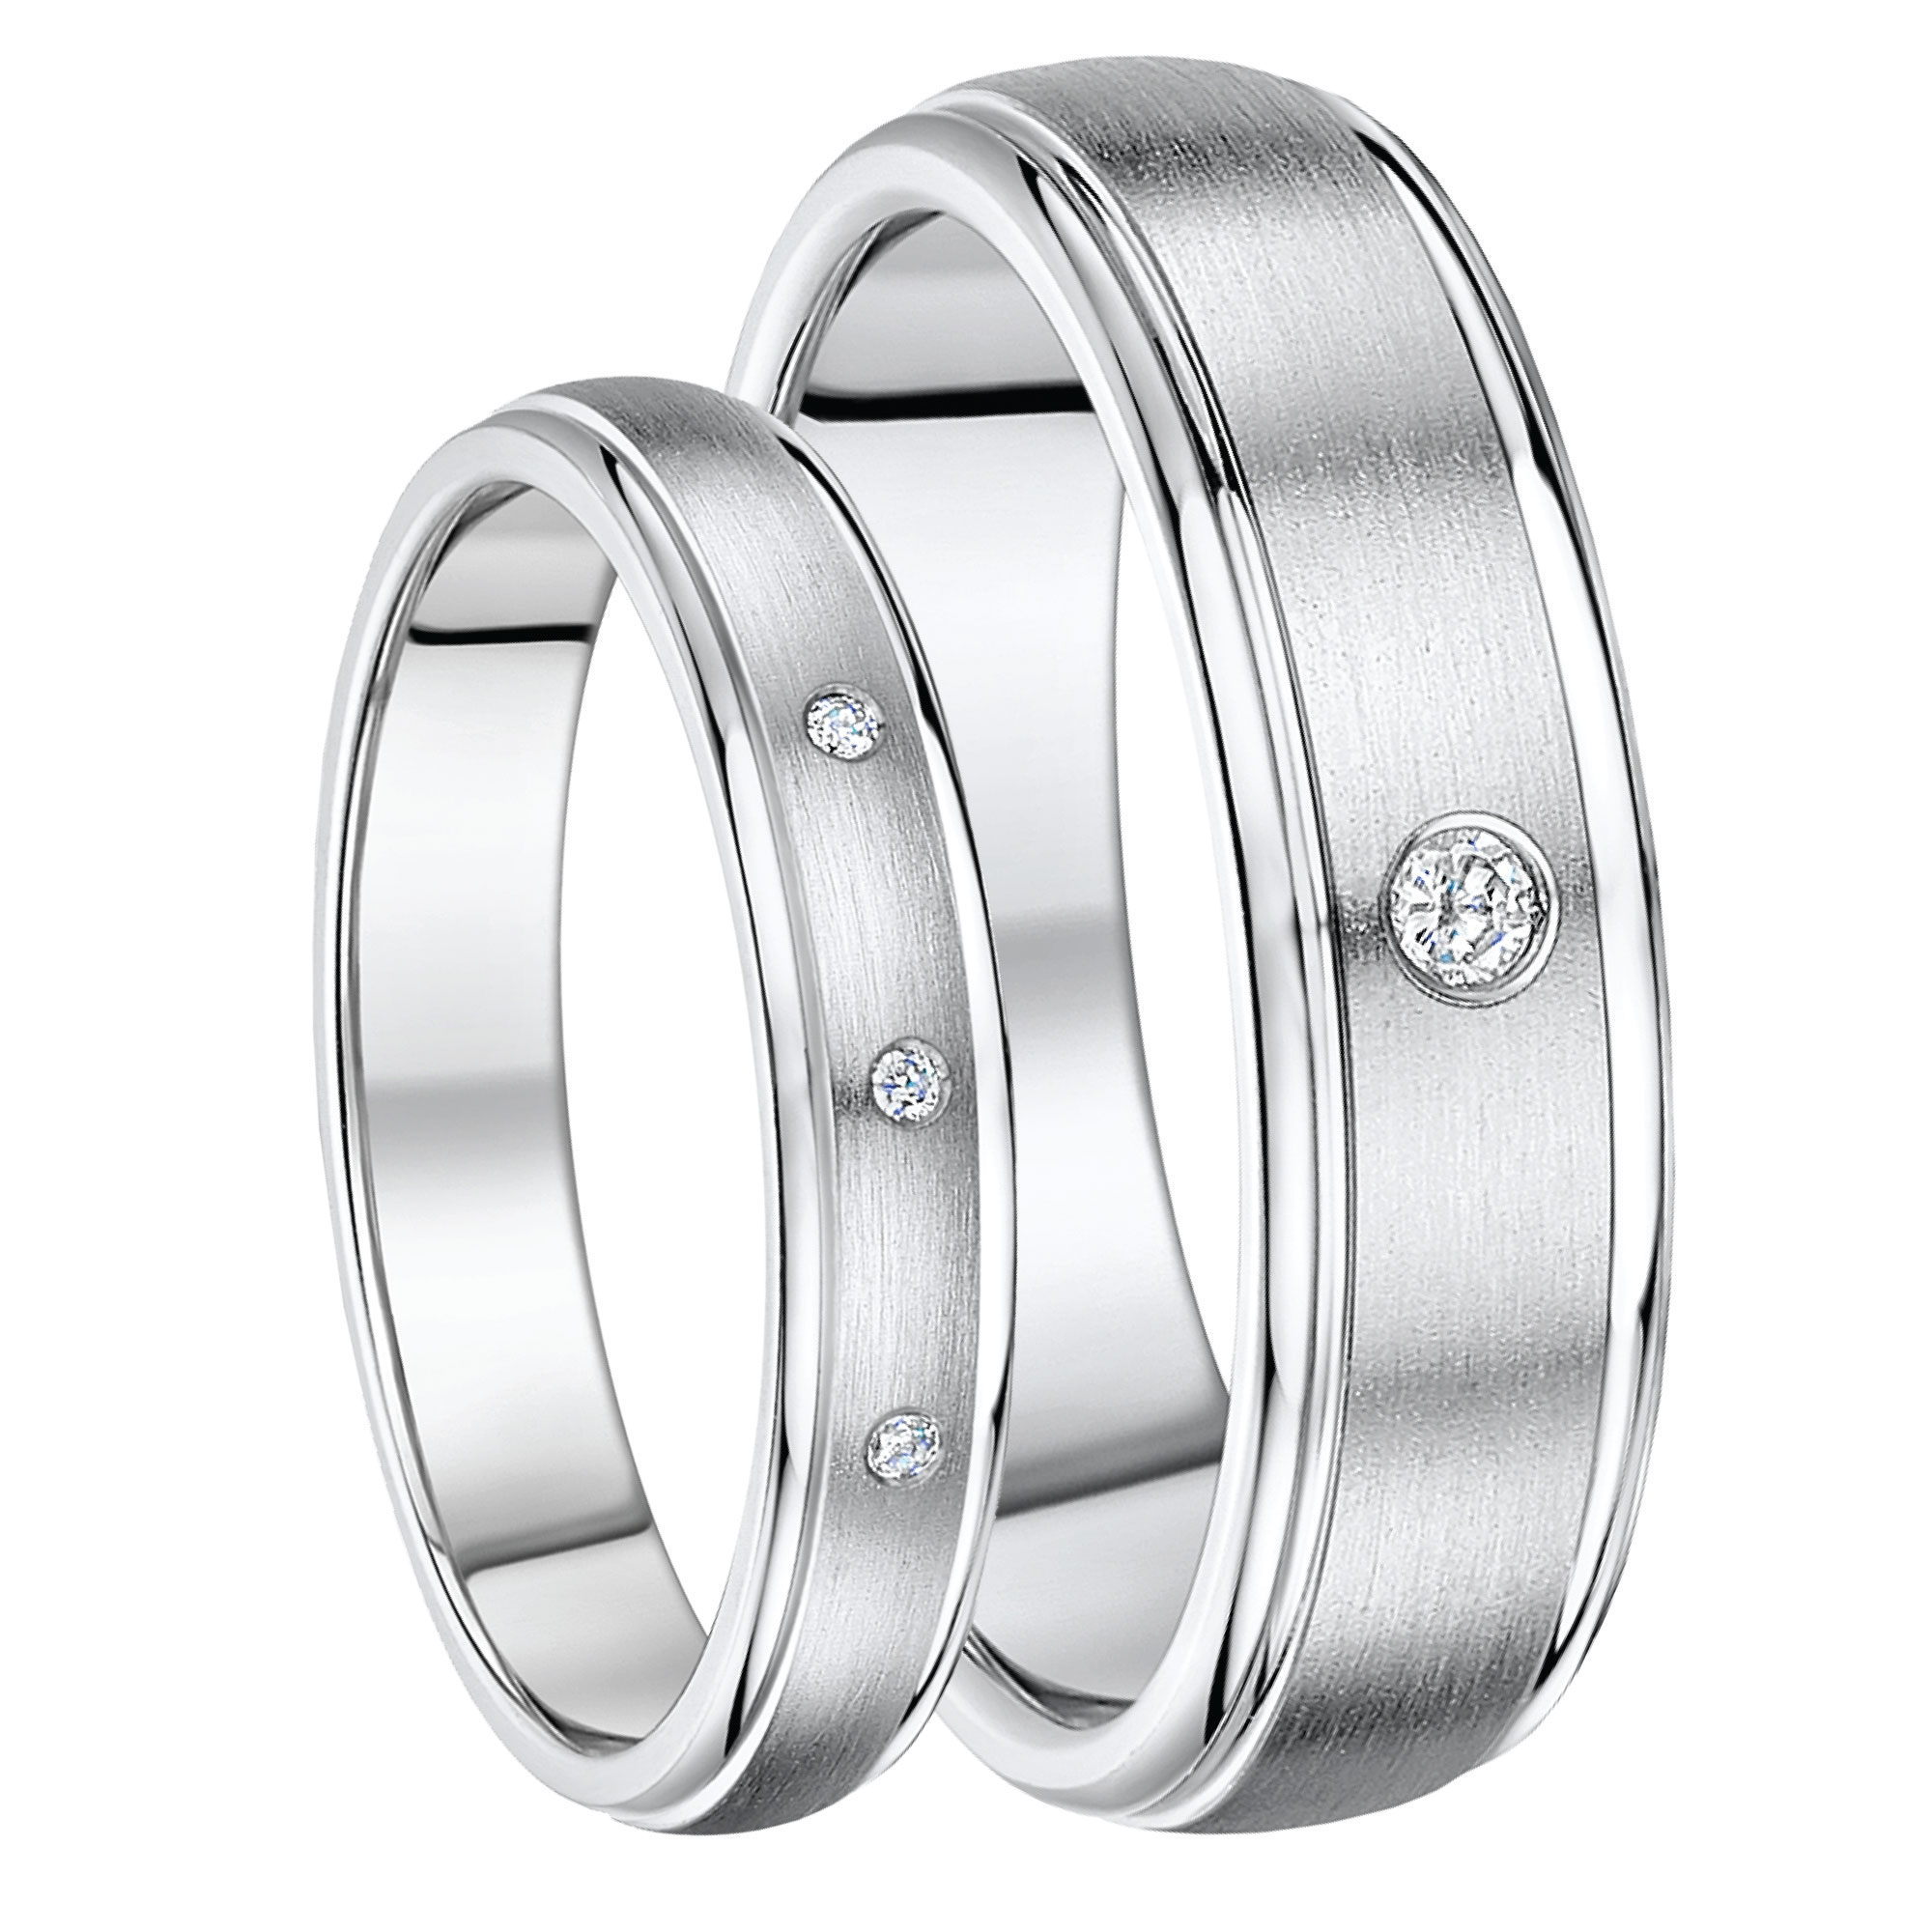 wedding to set platinum jewellery her anniversary for pertaining sets rings band bands latest